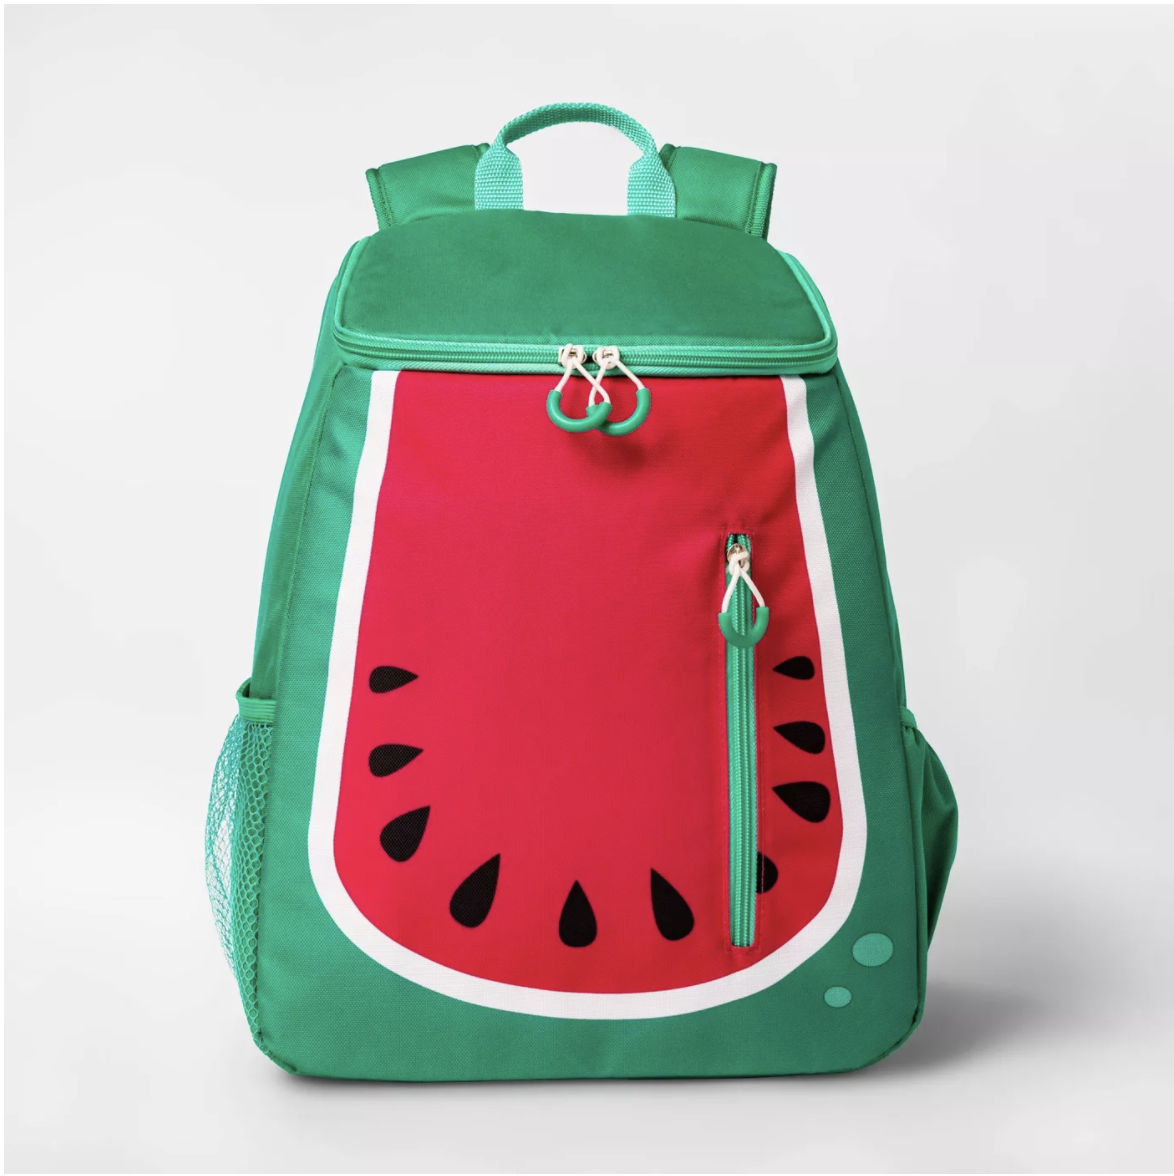 Watermelon Backpack Cooler